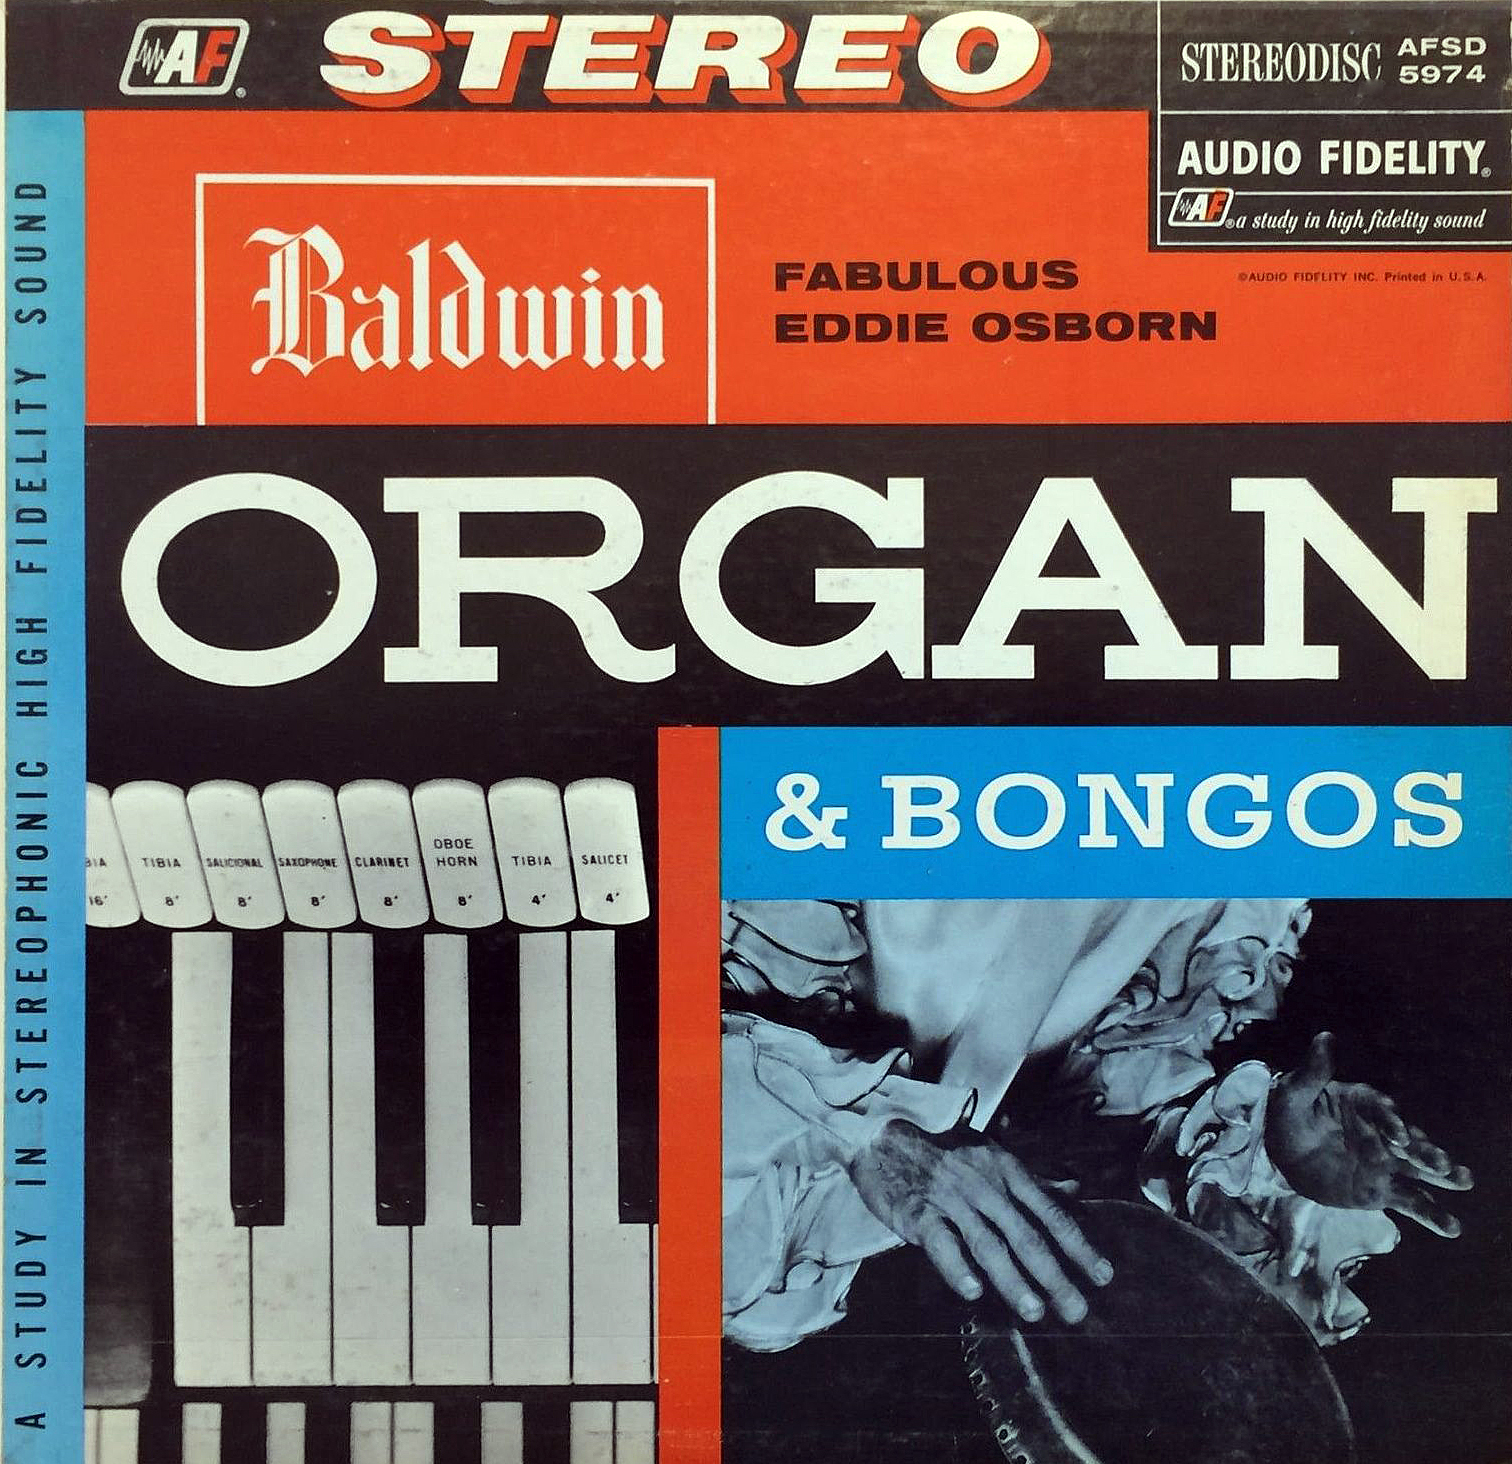 Eddie Osborn - Baldwin Organ and Bongos